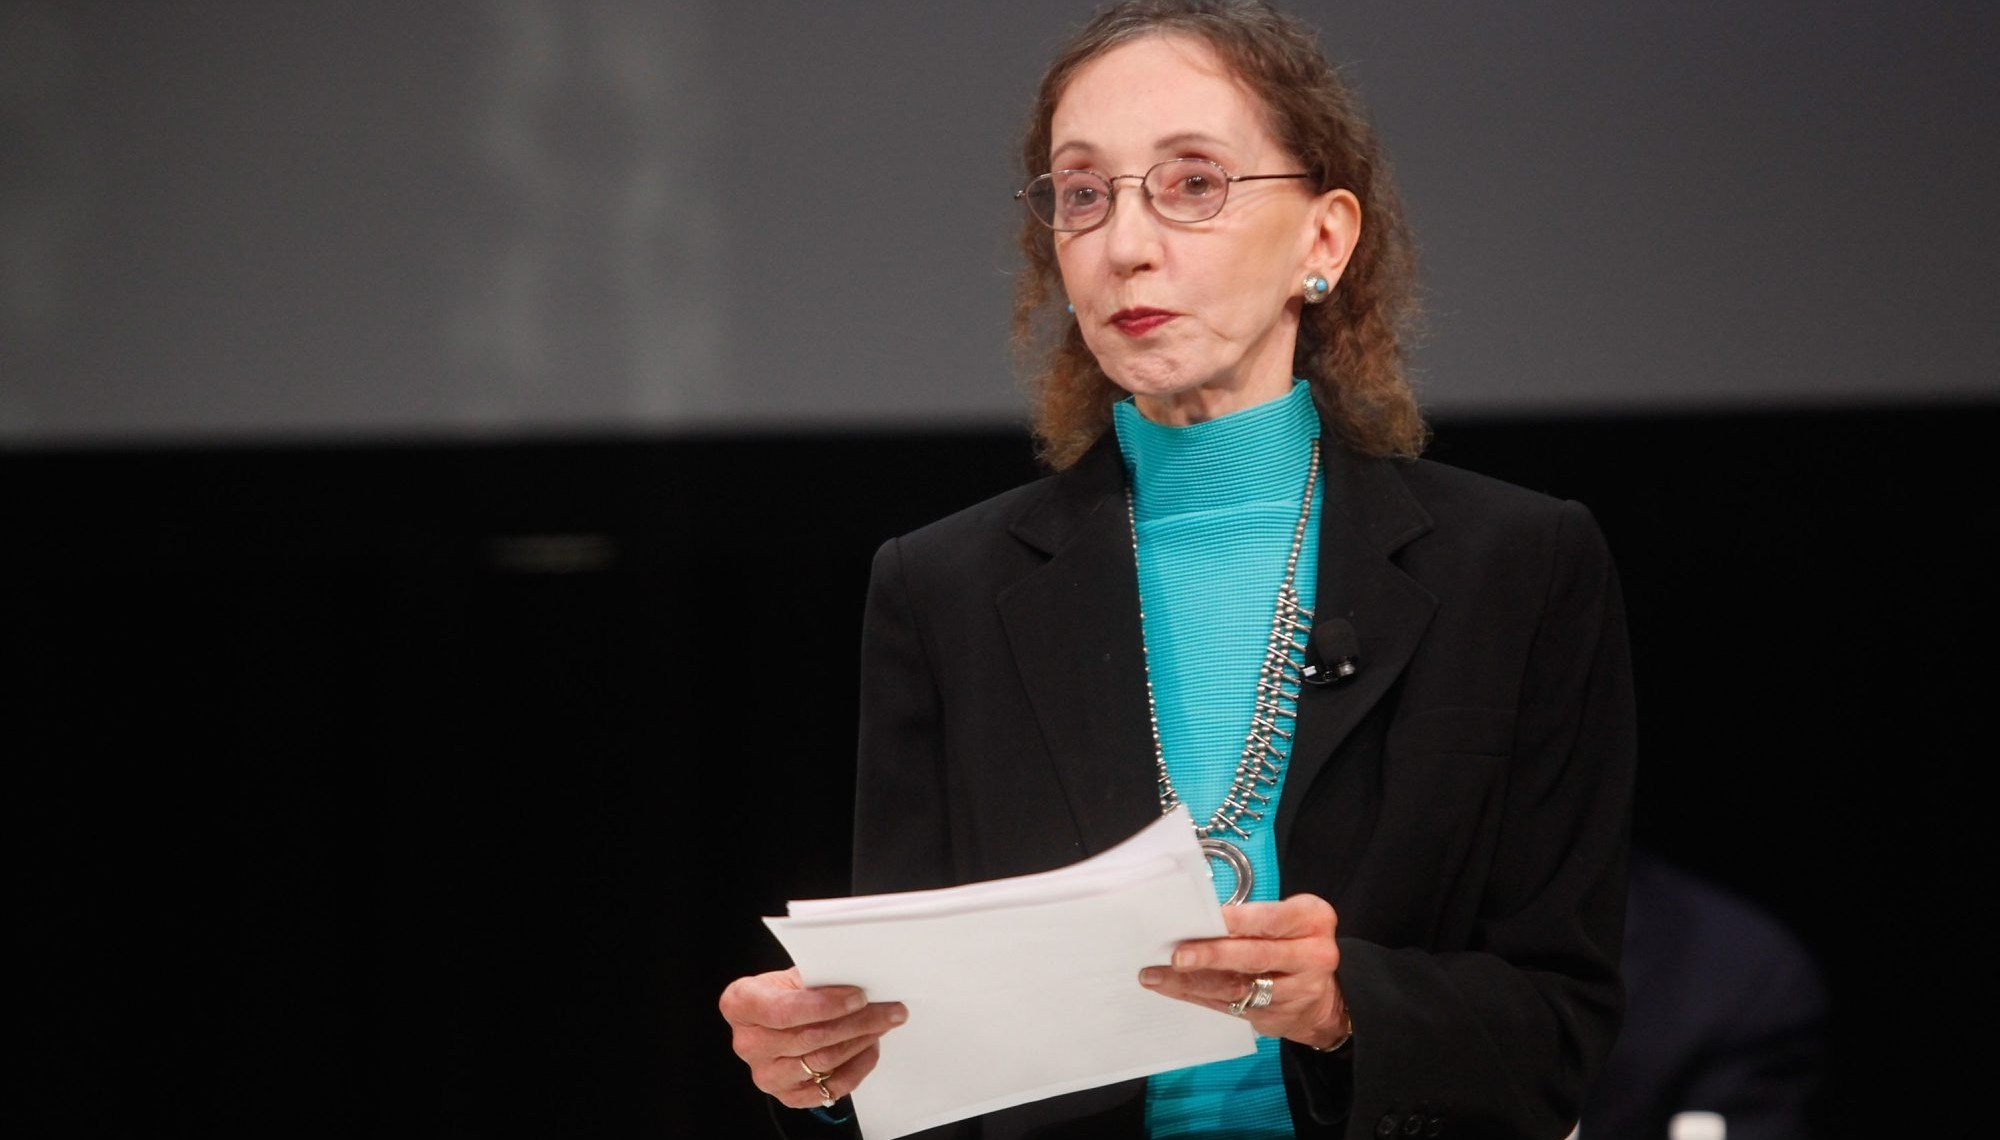 Joyce Carol Oates will speak at the David A. Howe Public Library of Wellsville on Oct. 2. (Getty Images)